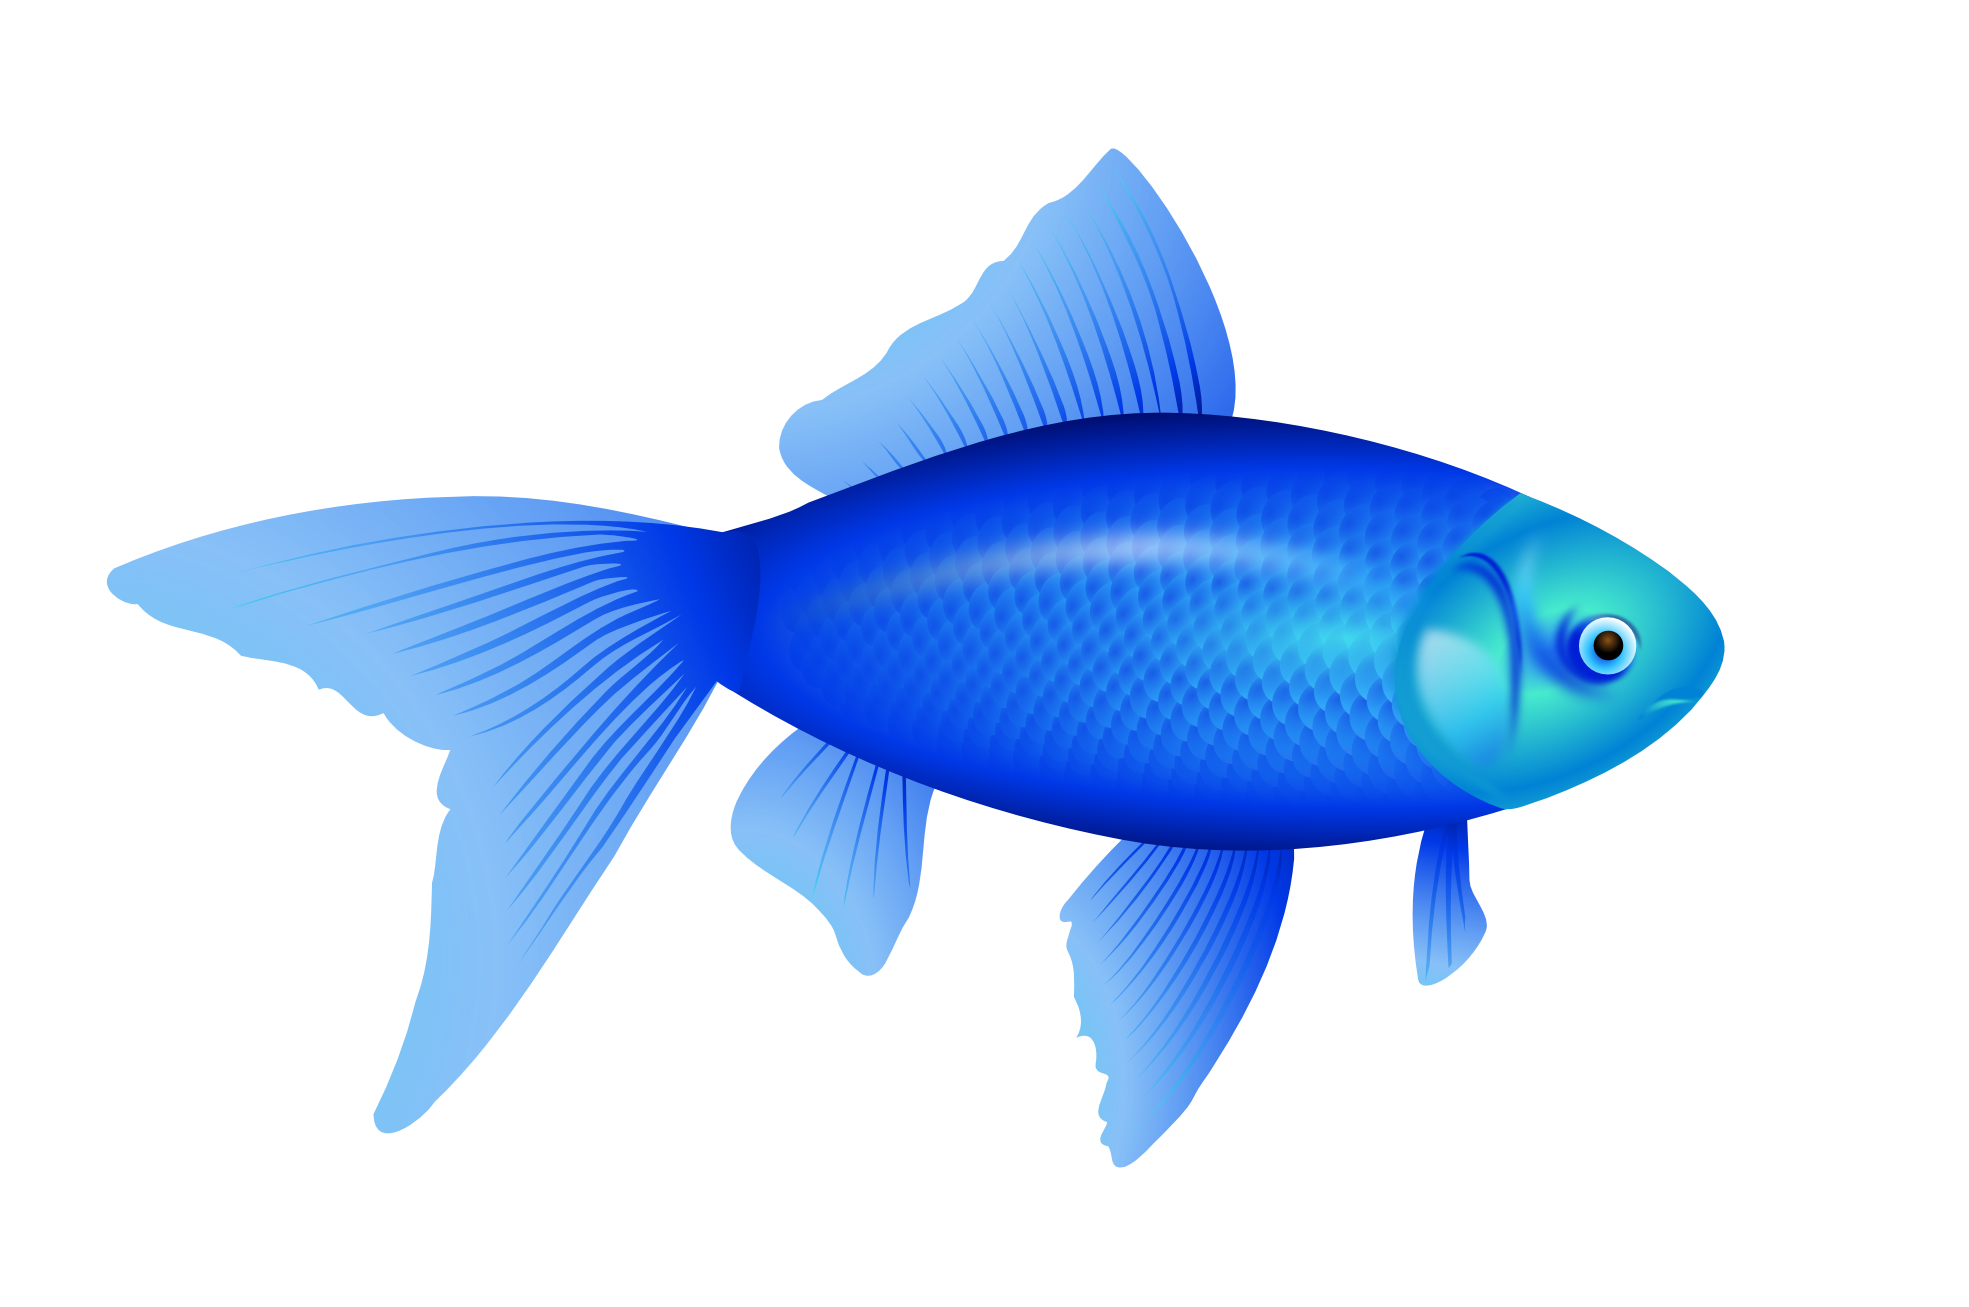 Blue Cartoon Fish 1446.56 Kb